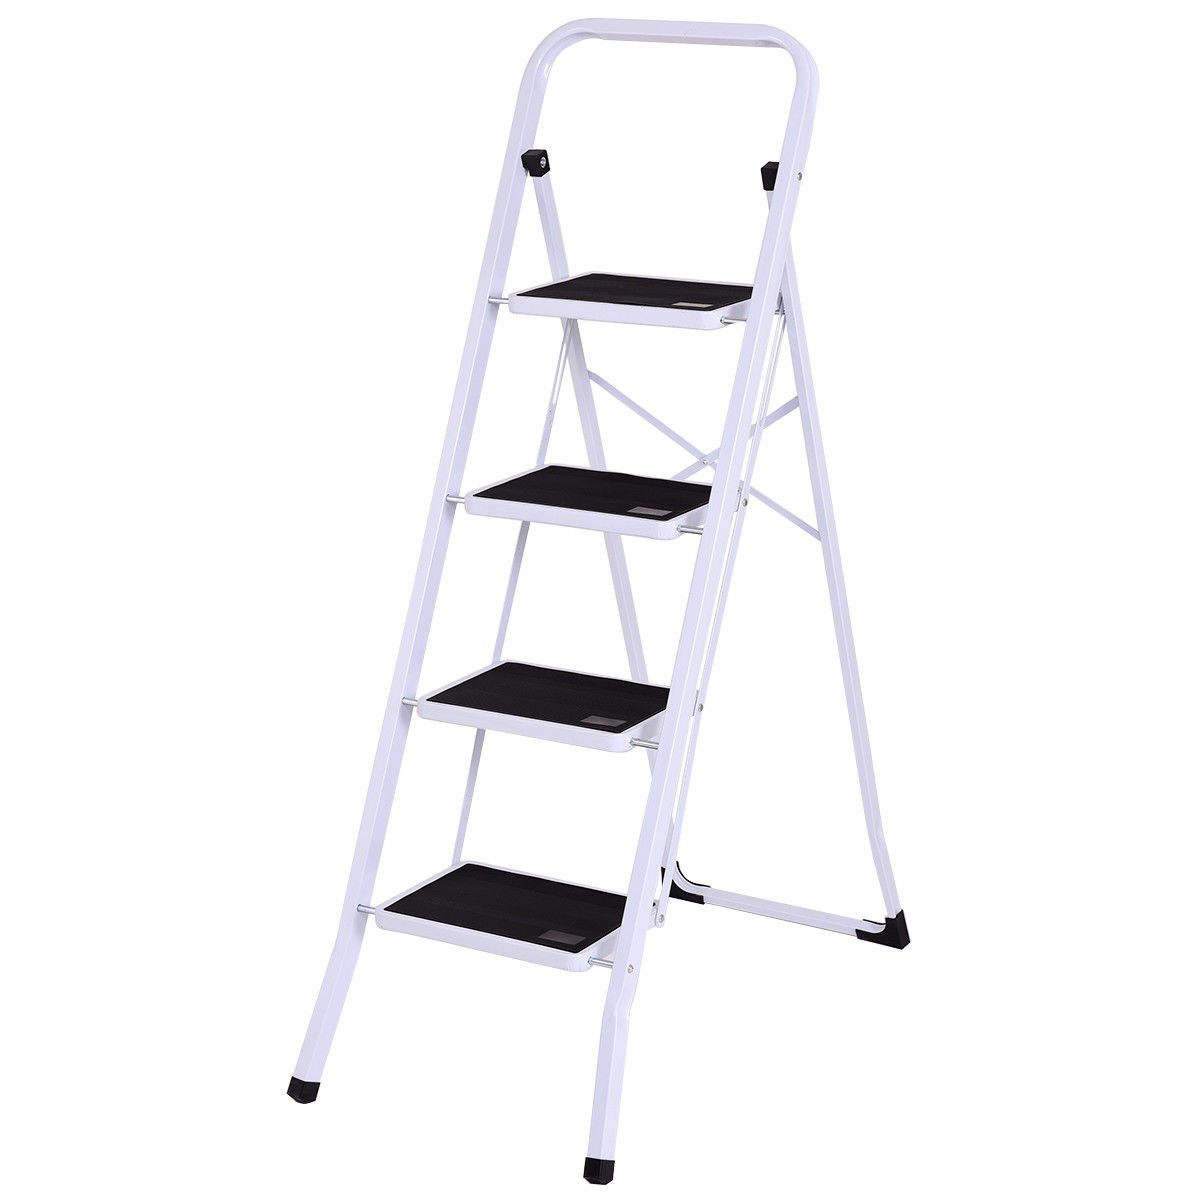 Moon Daughter 4 Step Ladder Folding Steel Step Stool Cross Back Anti-slip Heavy Duty with 330Lbs Capacity